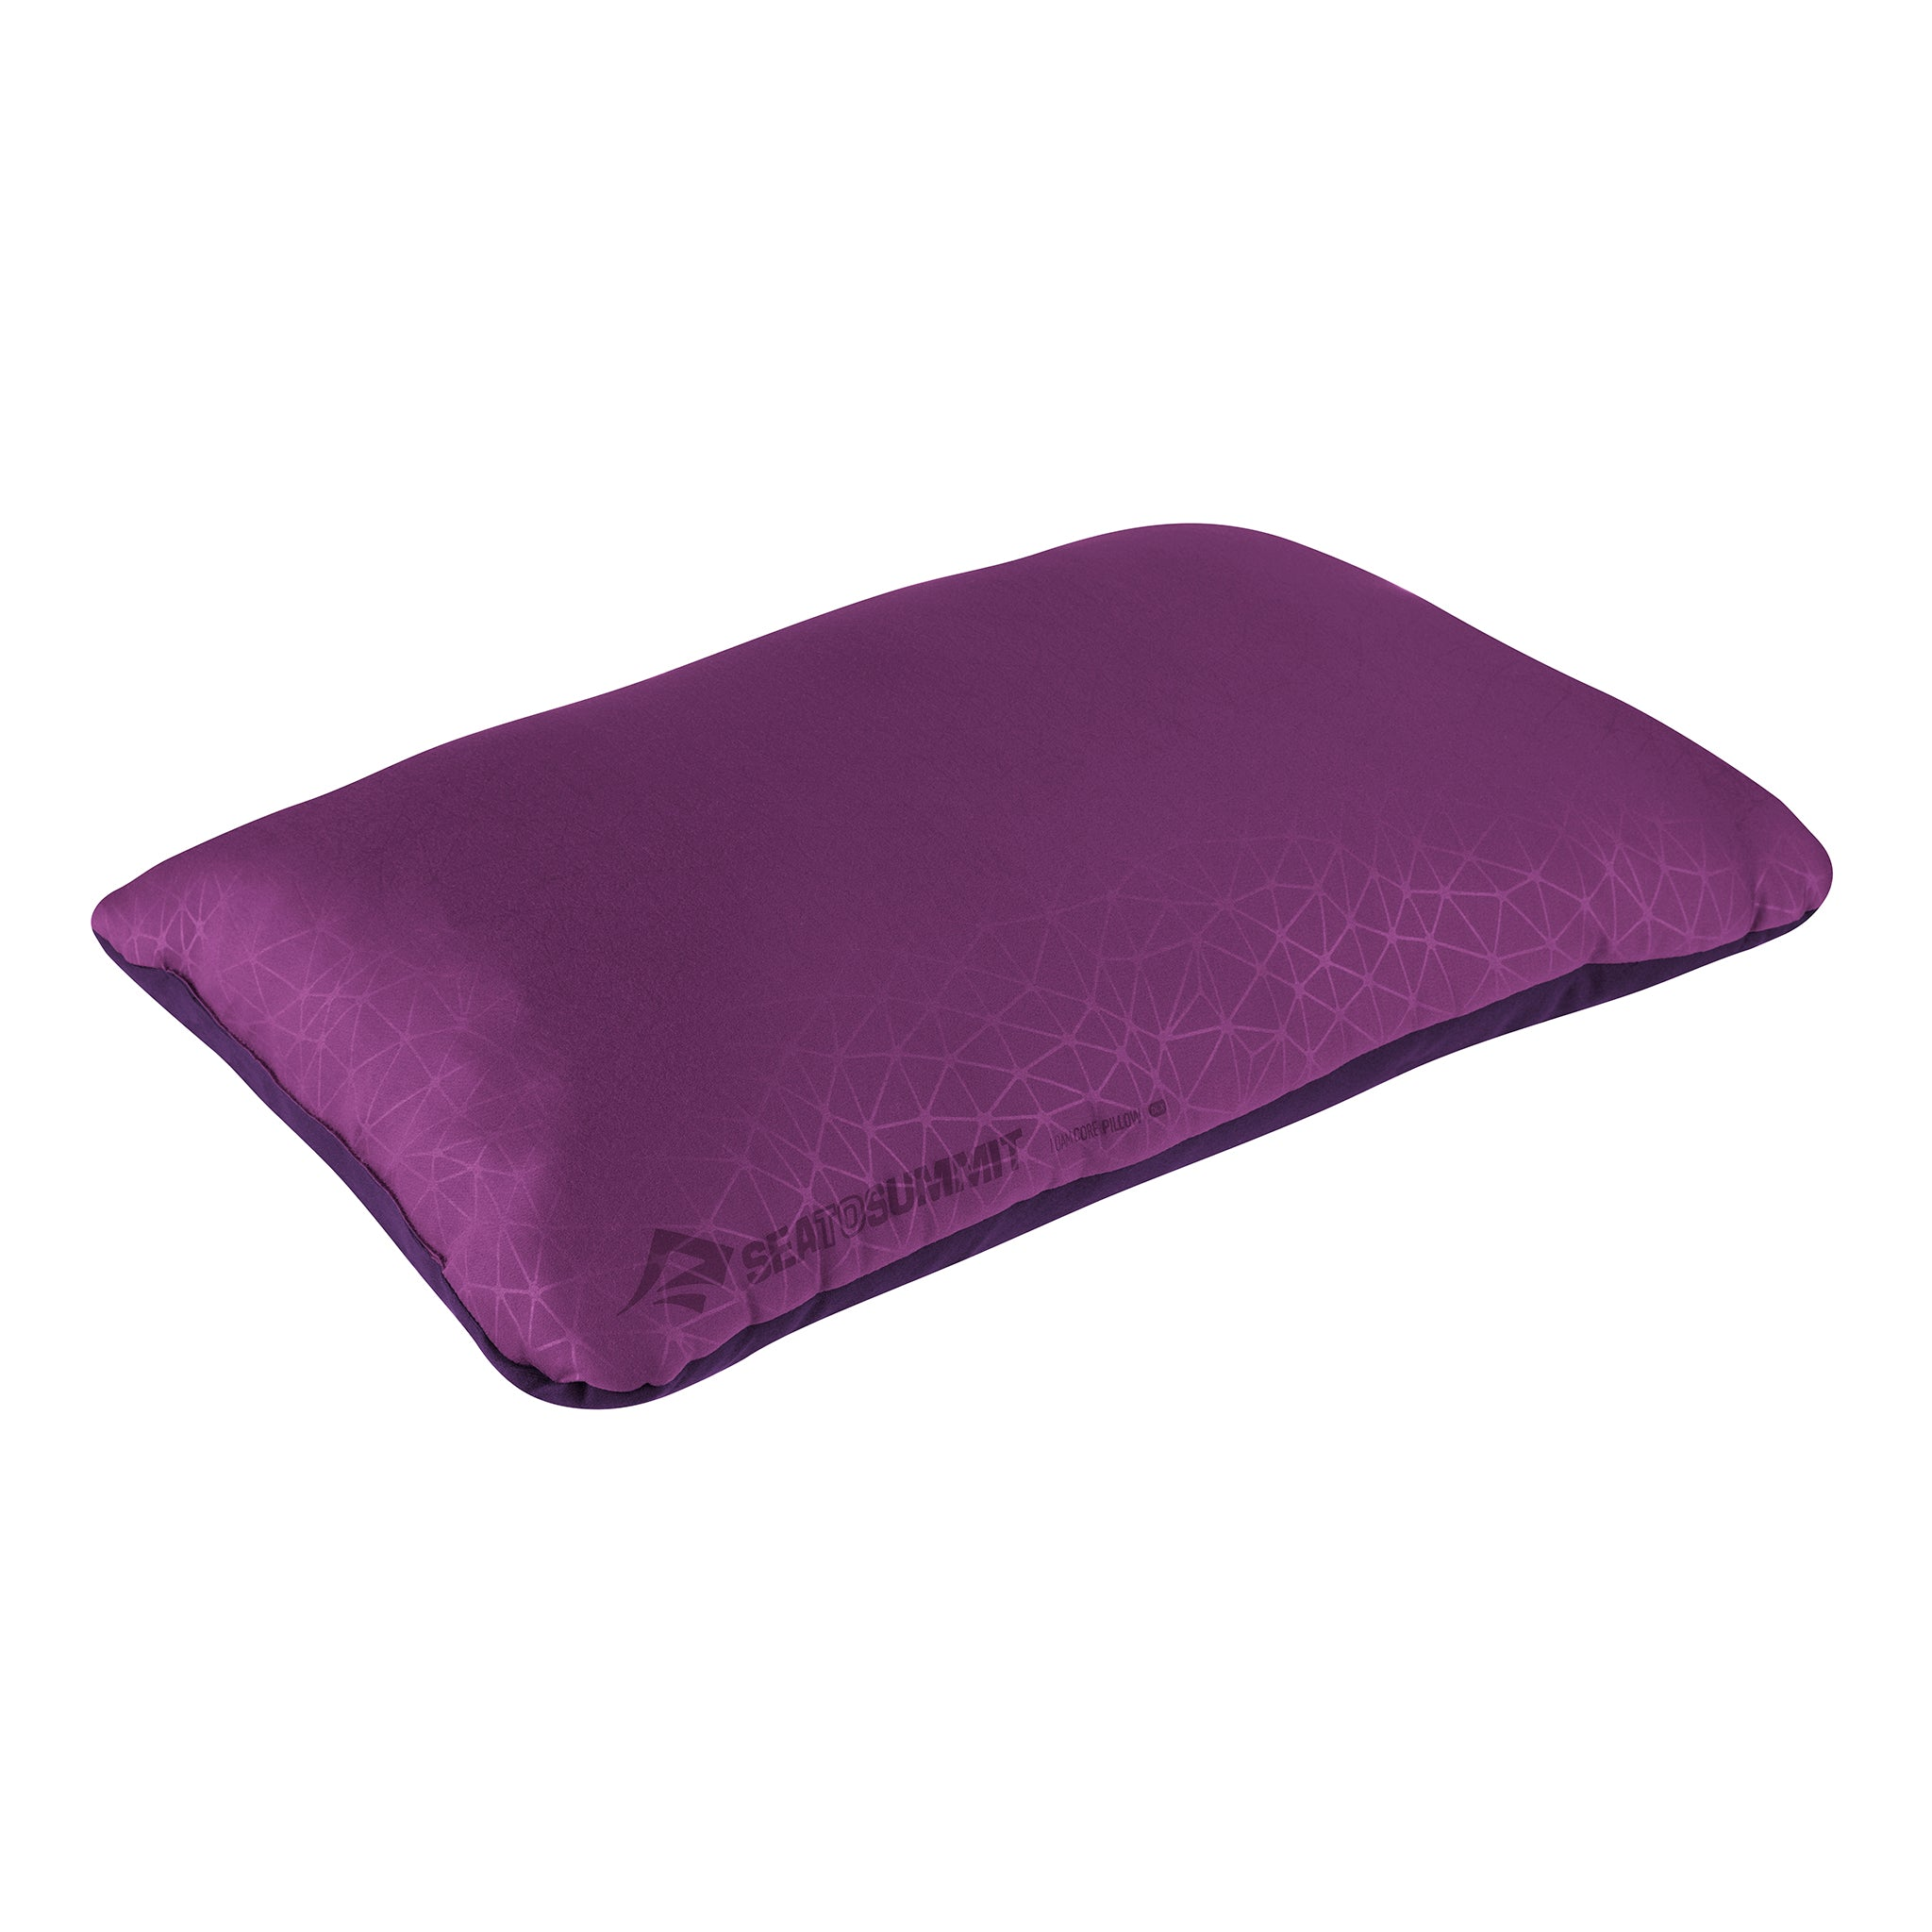 Foamcore Camping Pillow _ Magenta _ Full Size _ Deluxe